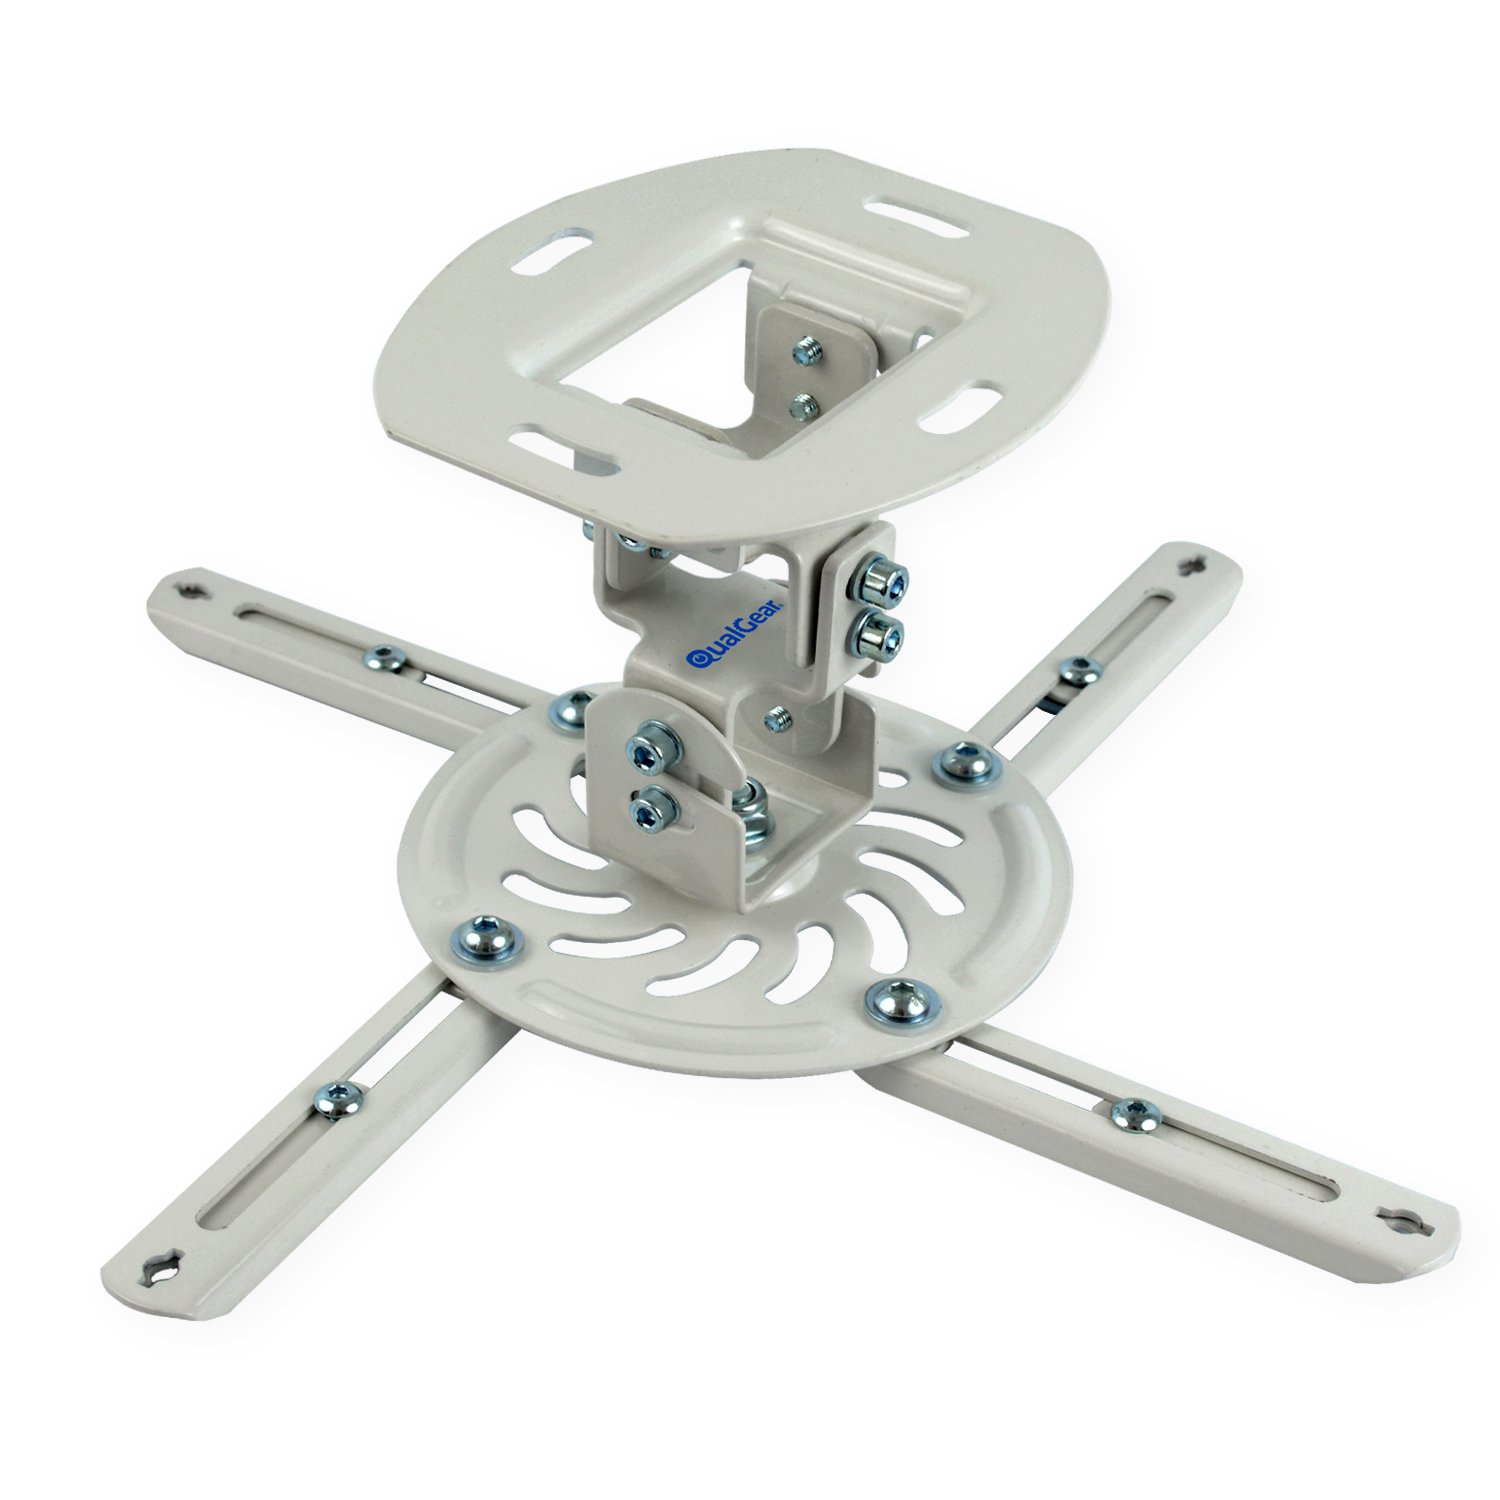 Amazon qualgear qg pm 002 wht s projector ceiling mount amazon qualgear qg pm 002 wht s projector ceiling mount accessory electronics dailygadgetfo Choice Image